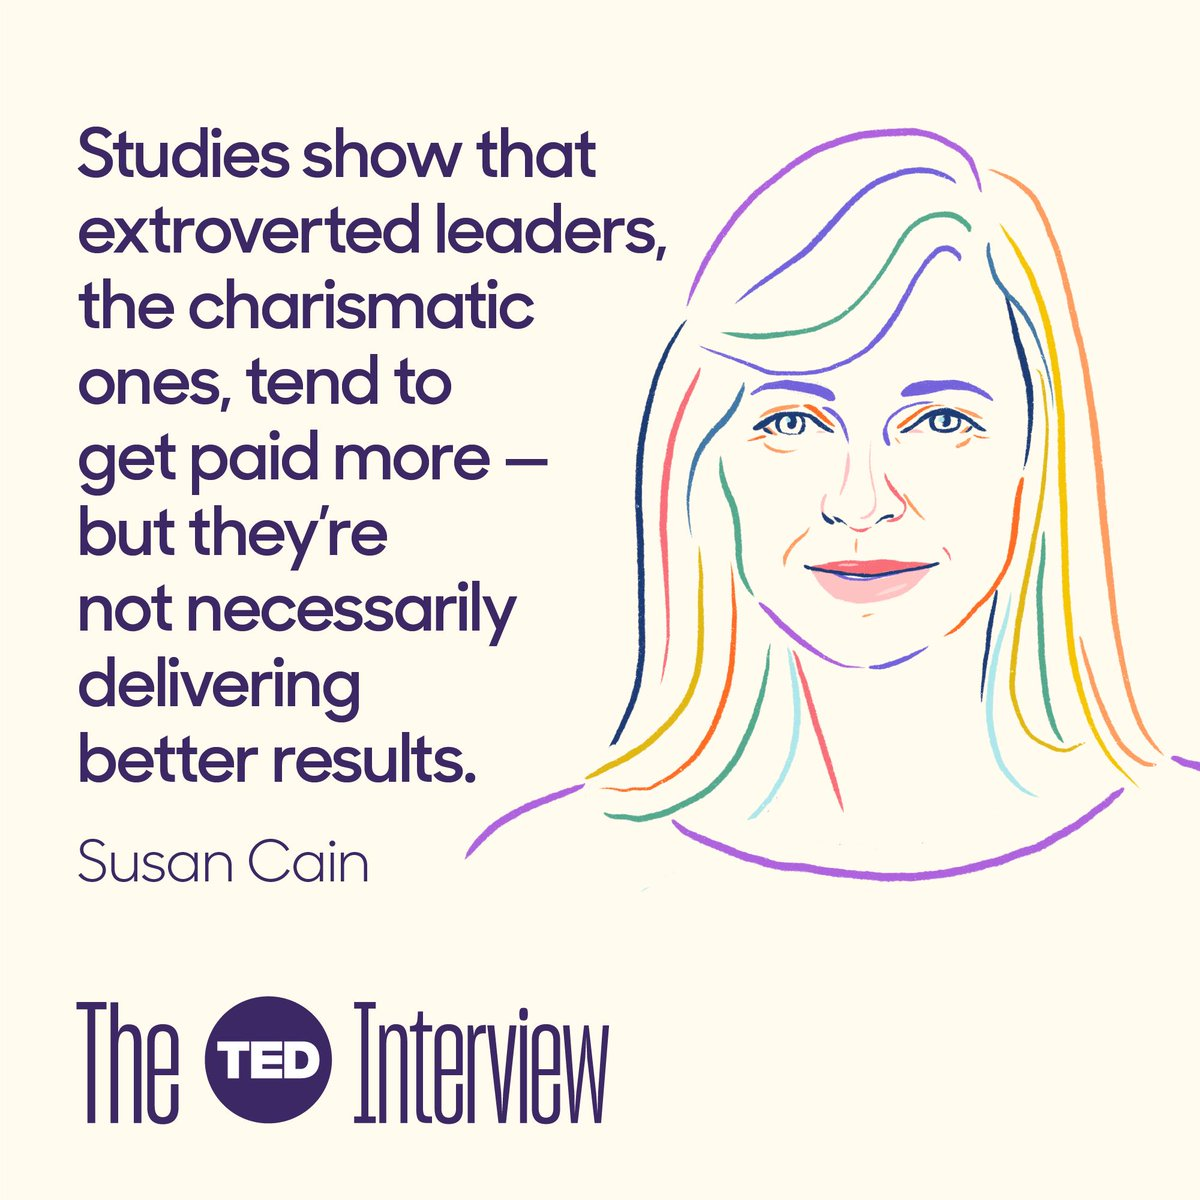 Really important point made by @susancain in latest episode of #TheTEDInterview http://bit.ly/2JRTk5w ...